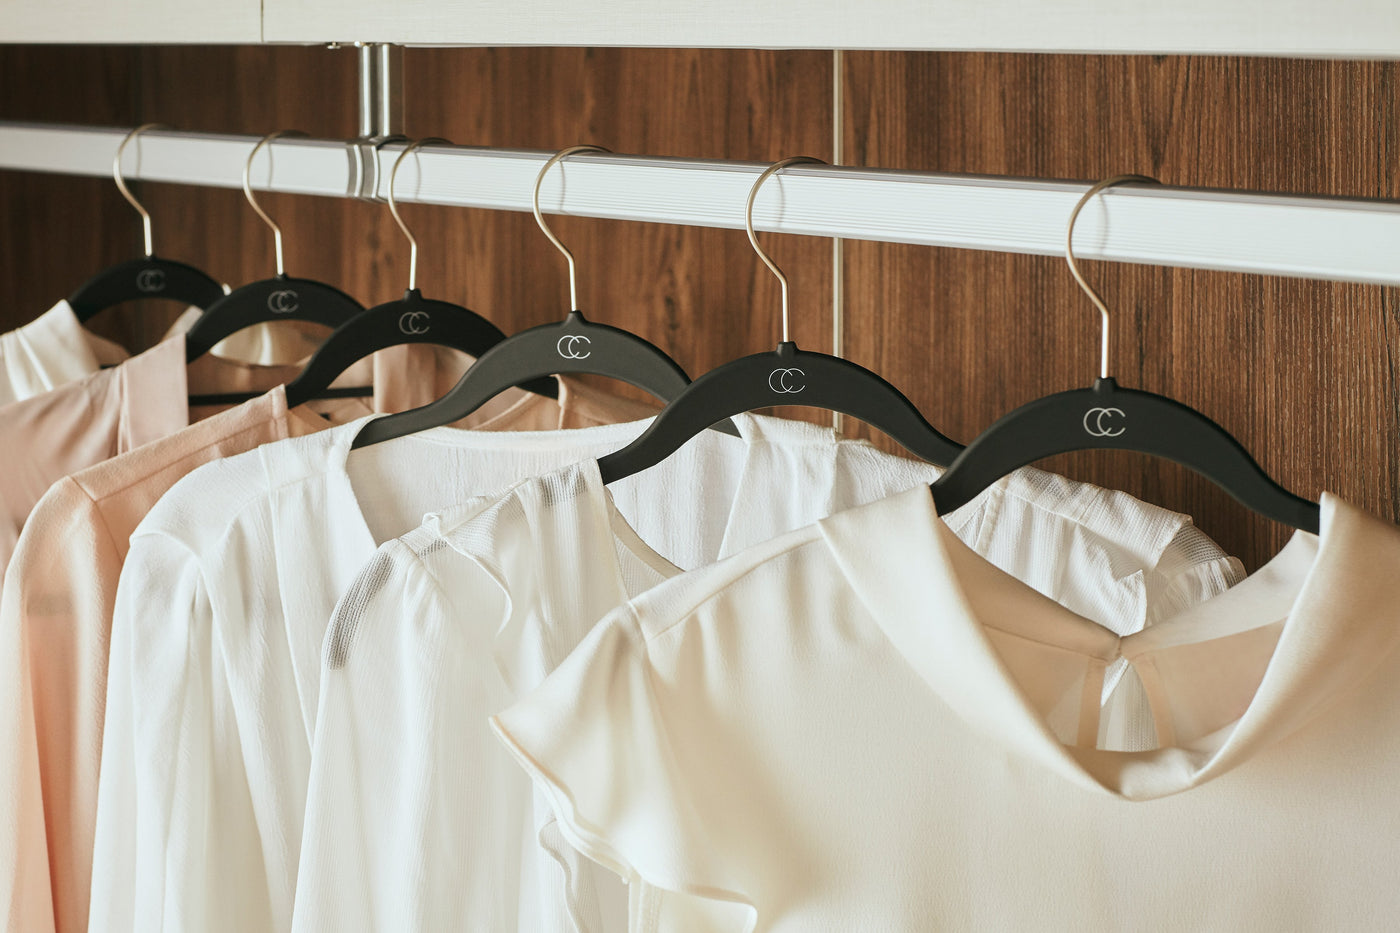 Black Hangers Collection by California Closets Essentials